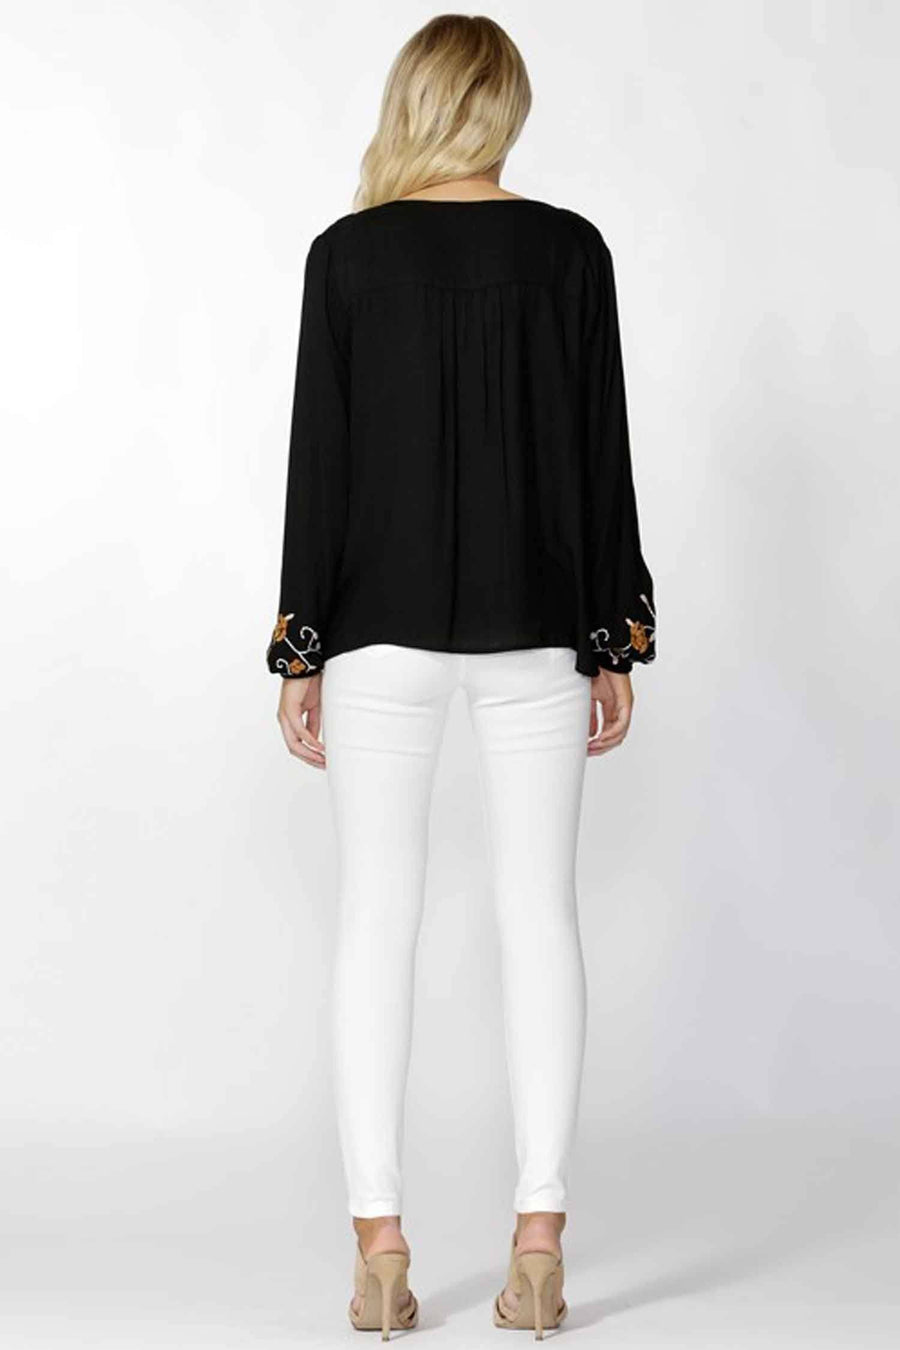 Gili Peasant Blouse in Black